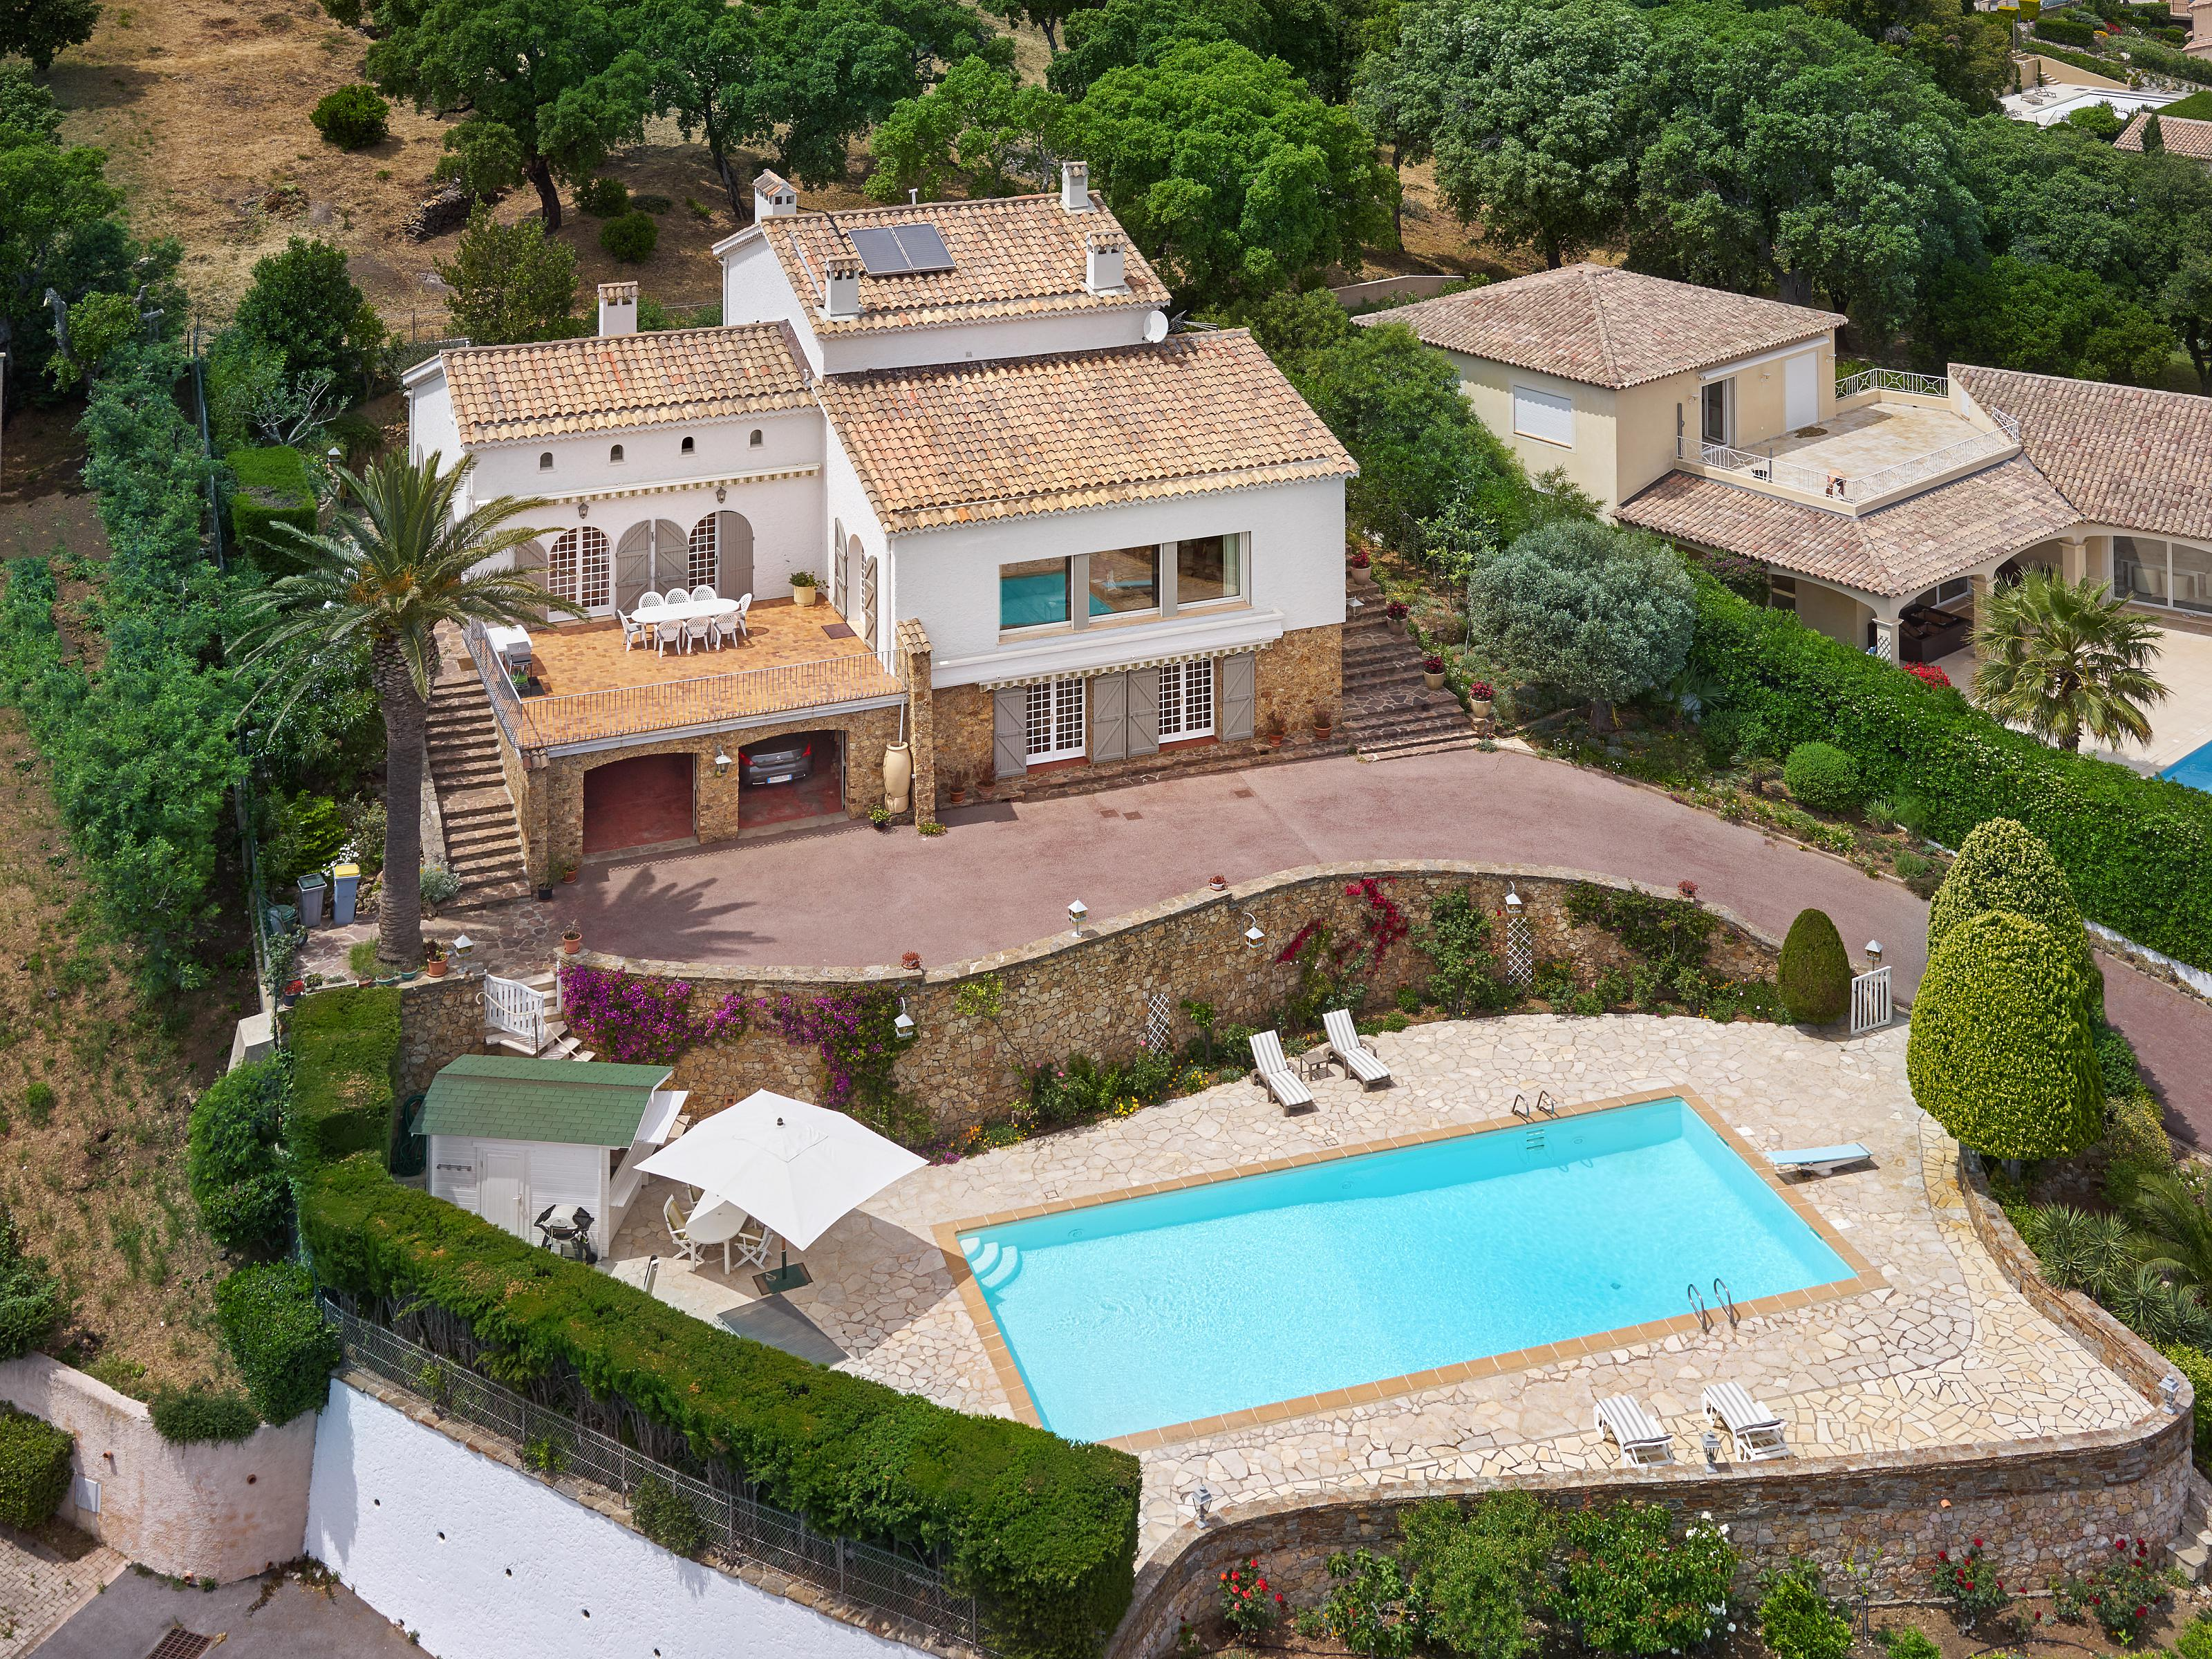 Maison unifamiliale pour l Vente à Villa close to the beach - Panoramic sea views Saint Maxime Other Provence-Alpes-Cote D'Azur, Provence-Alpes-Cote D'Azur 83380 France